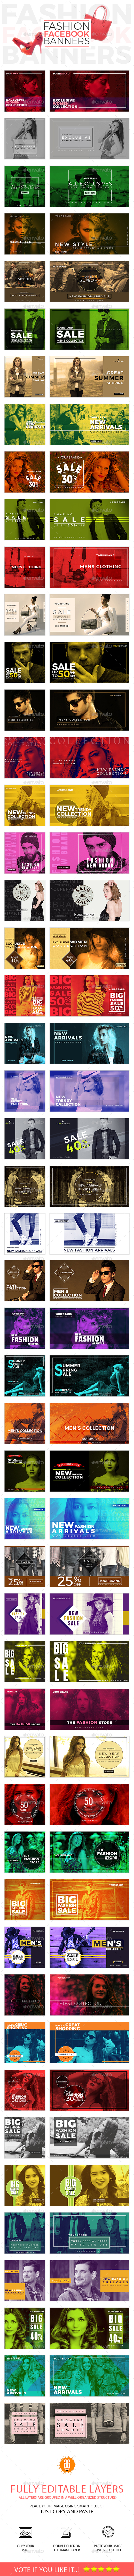 100 Fashion Facebook Post Banners - Social Media Web Elements